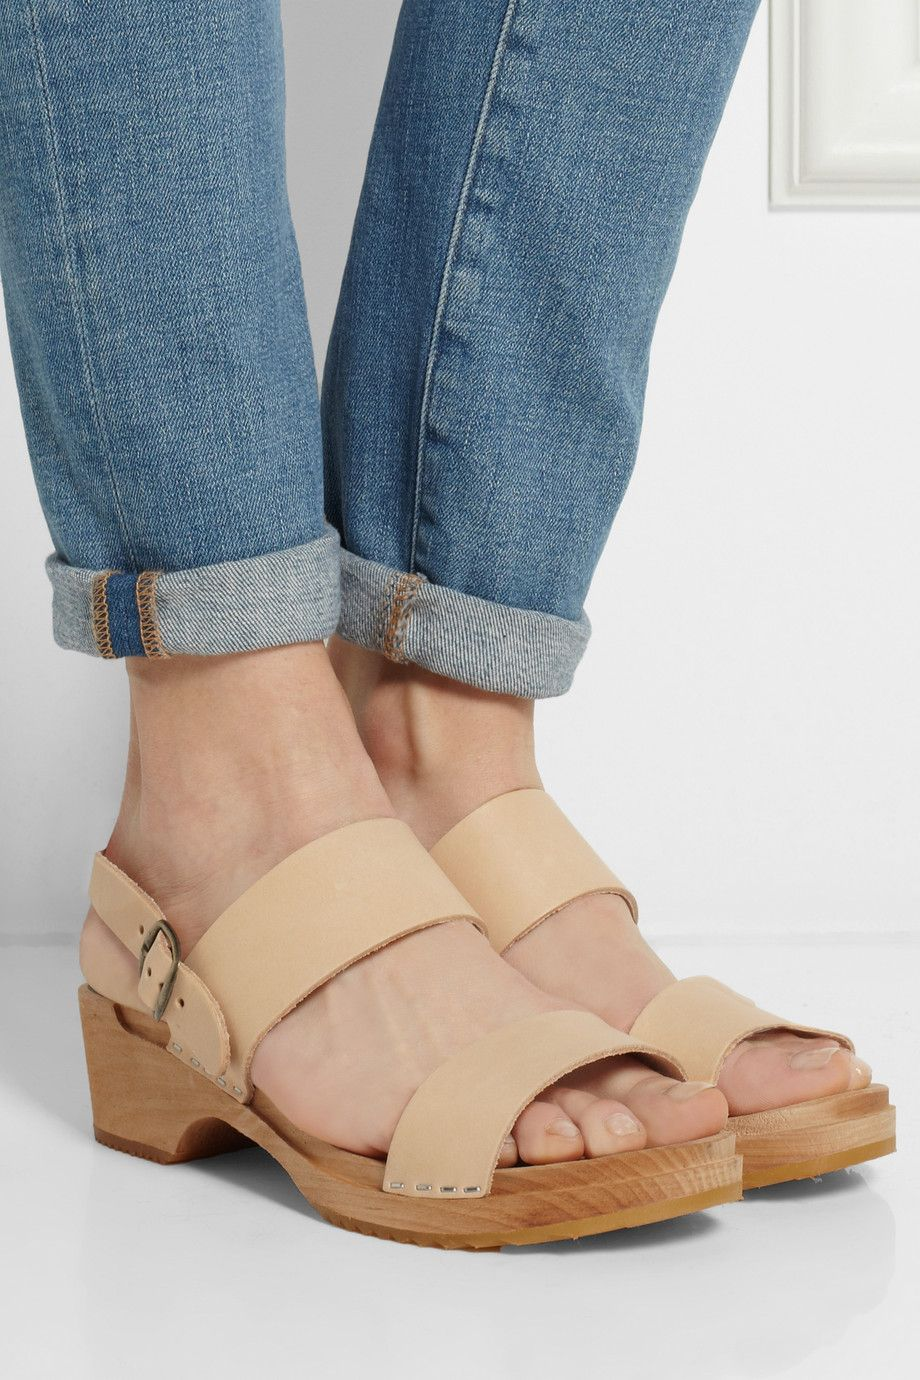 Leather Sandals - Funkis. When you find yourself liking things you've always, always not cared for. CLOGS.